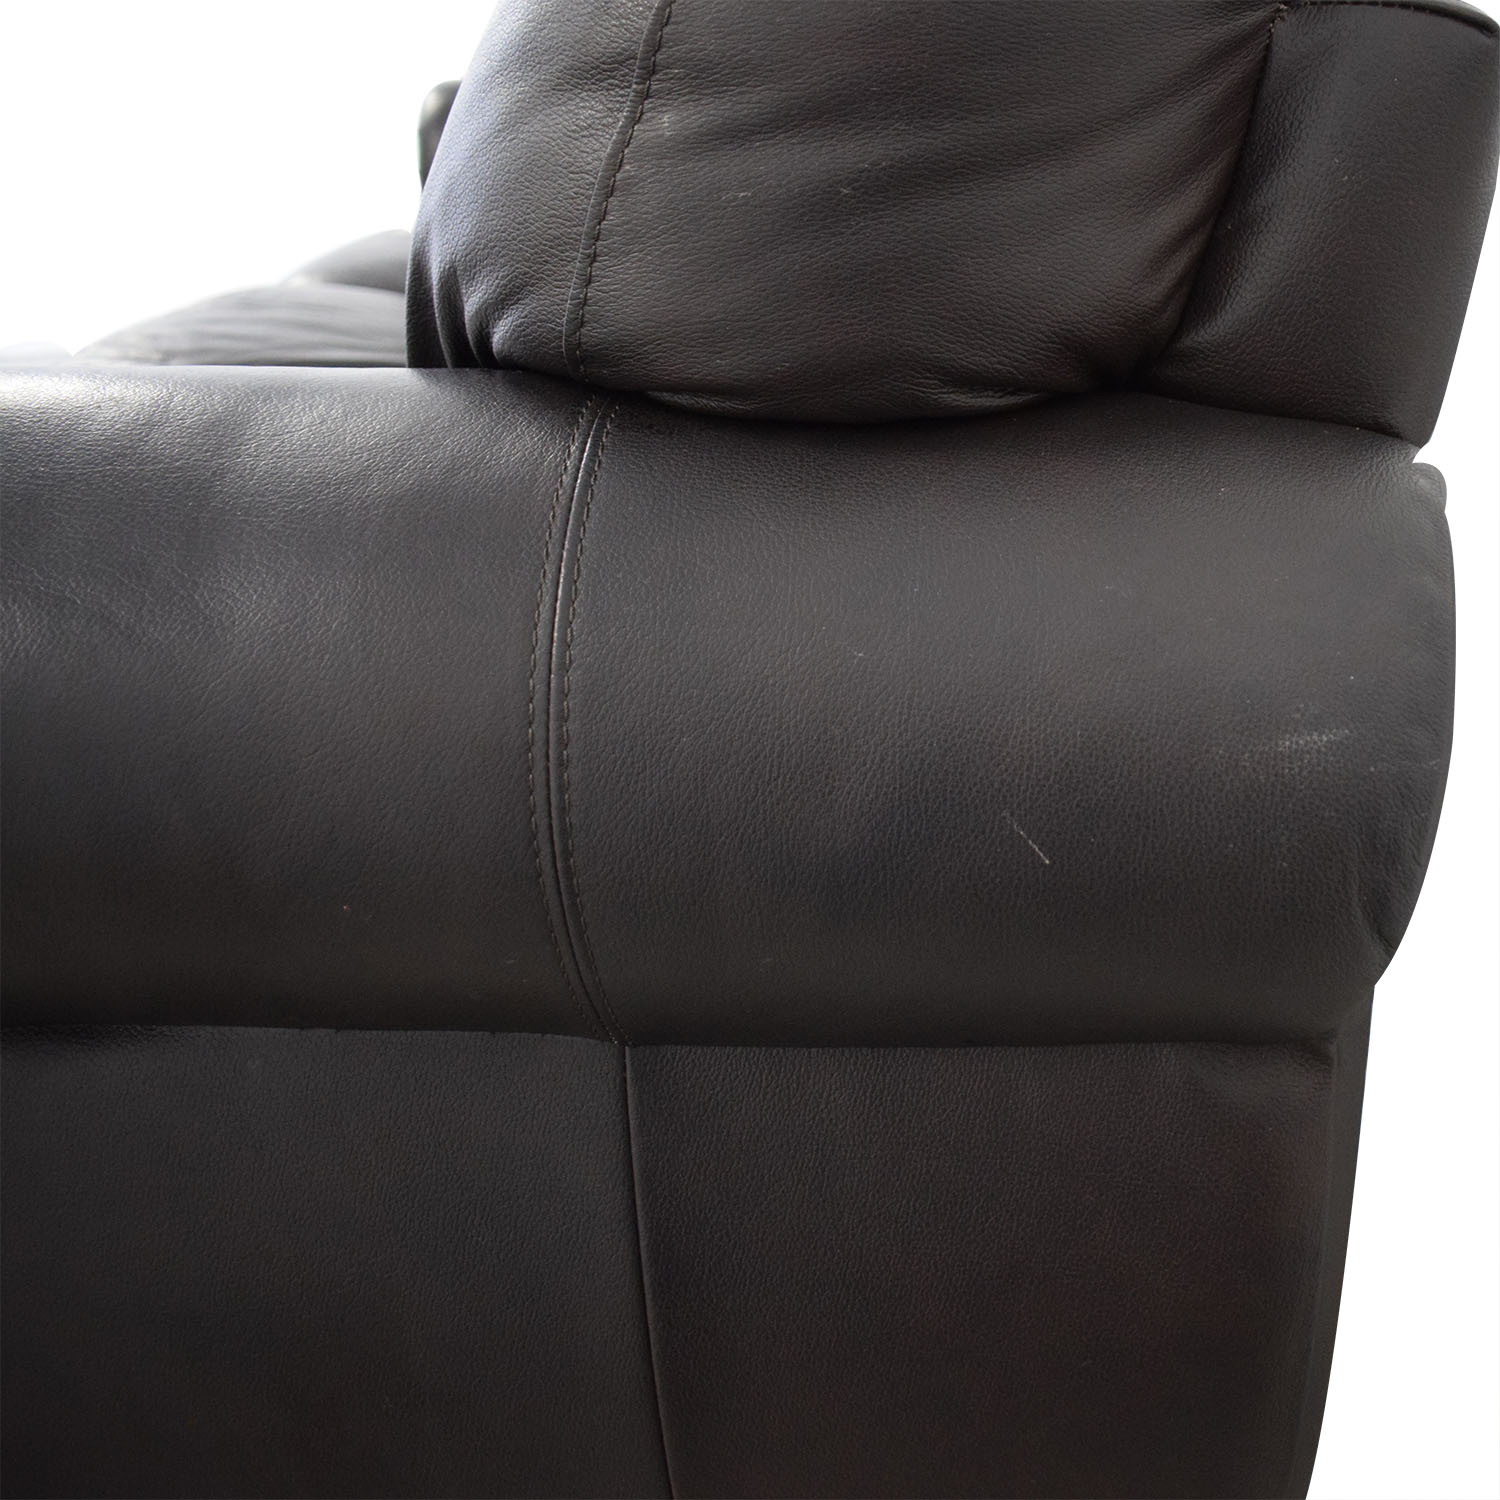 buy Raymour & Flanigan Leather Sleeper Sofa Raymour & Flanigan Sofas